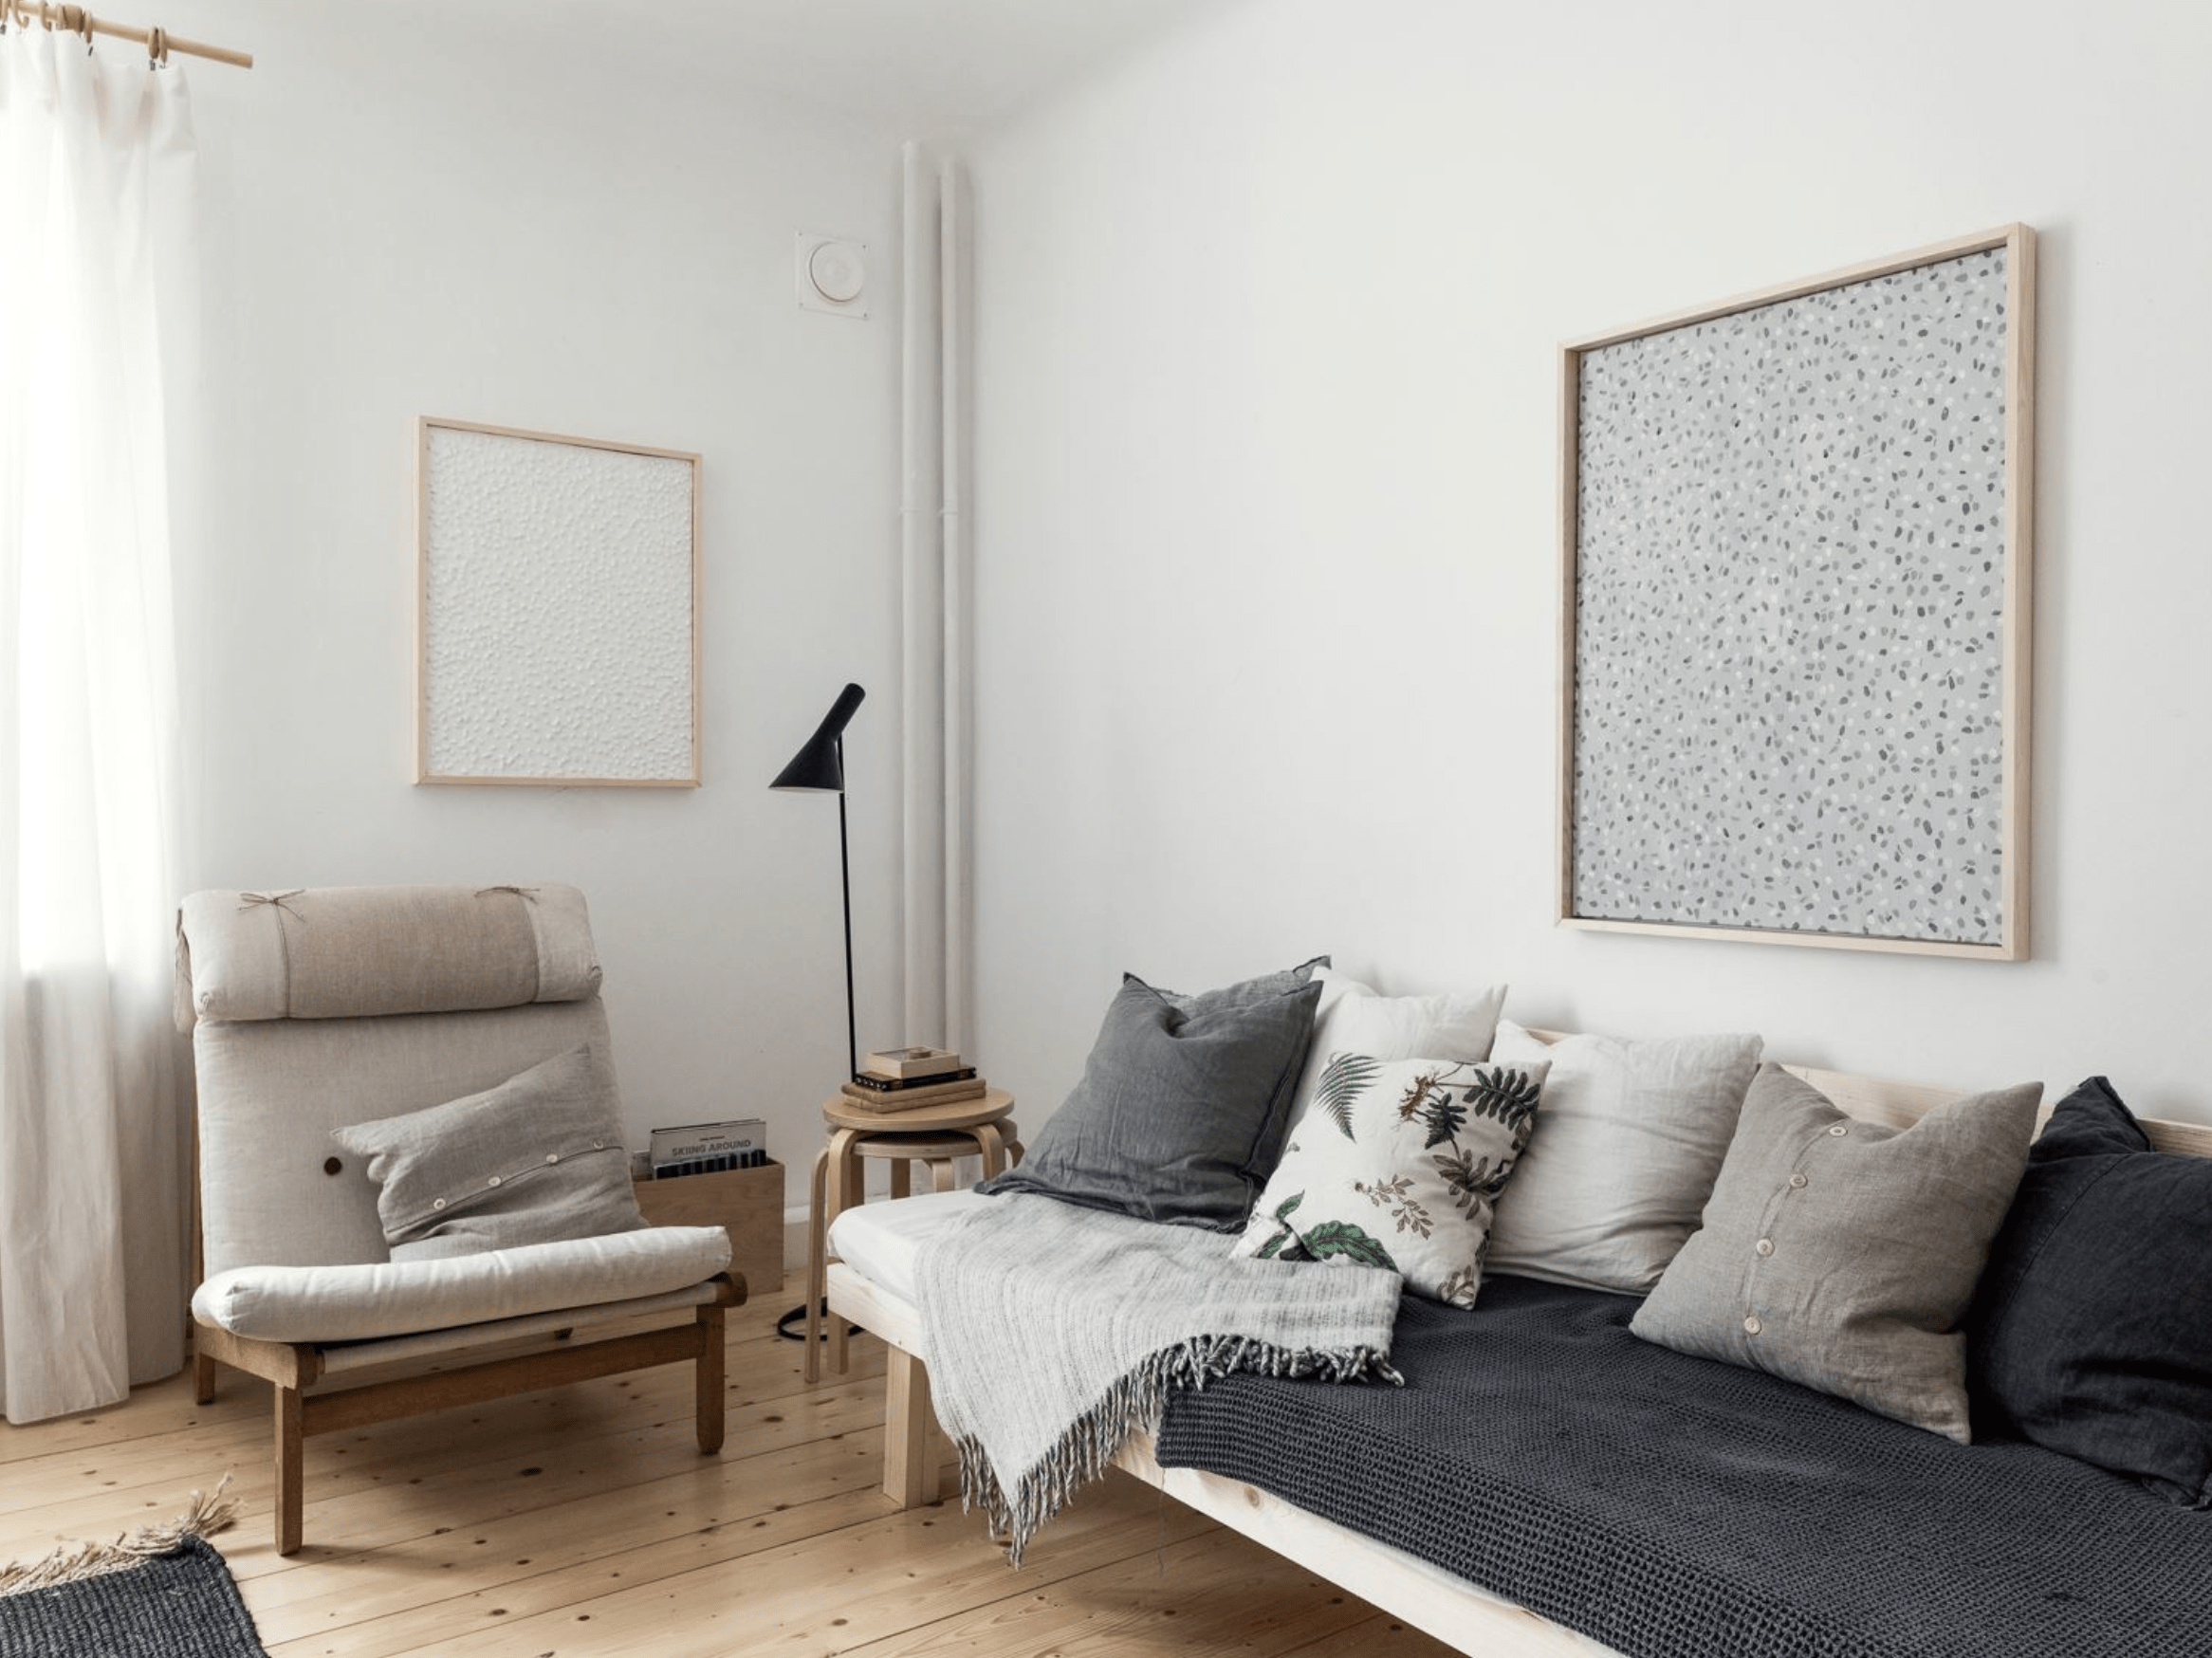 Cozy home finished with wood accents - COCO LAPINE DESIGNCOCO LAPINE ...